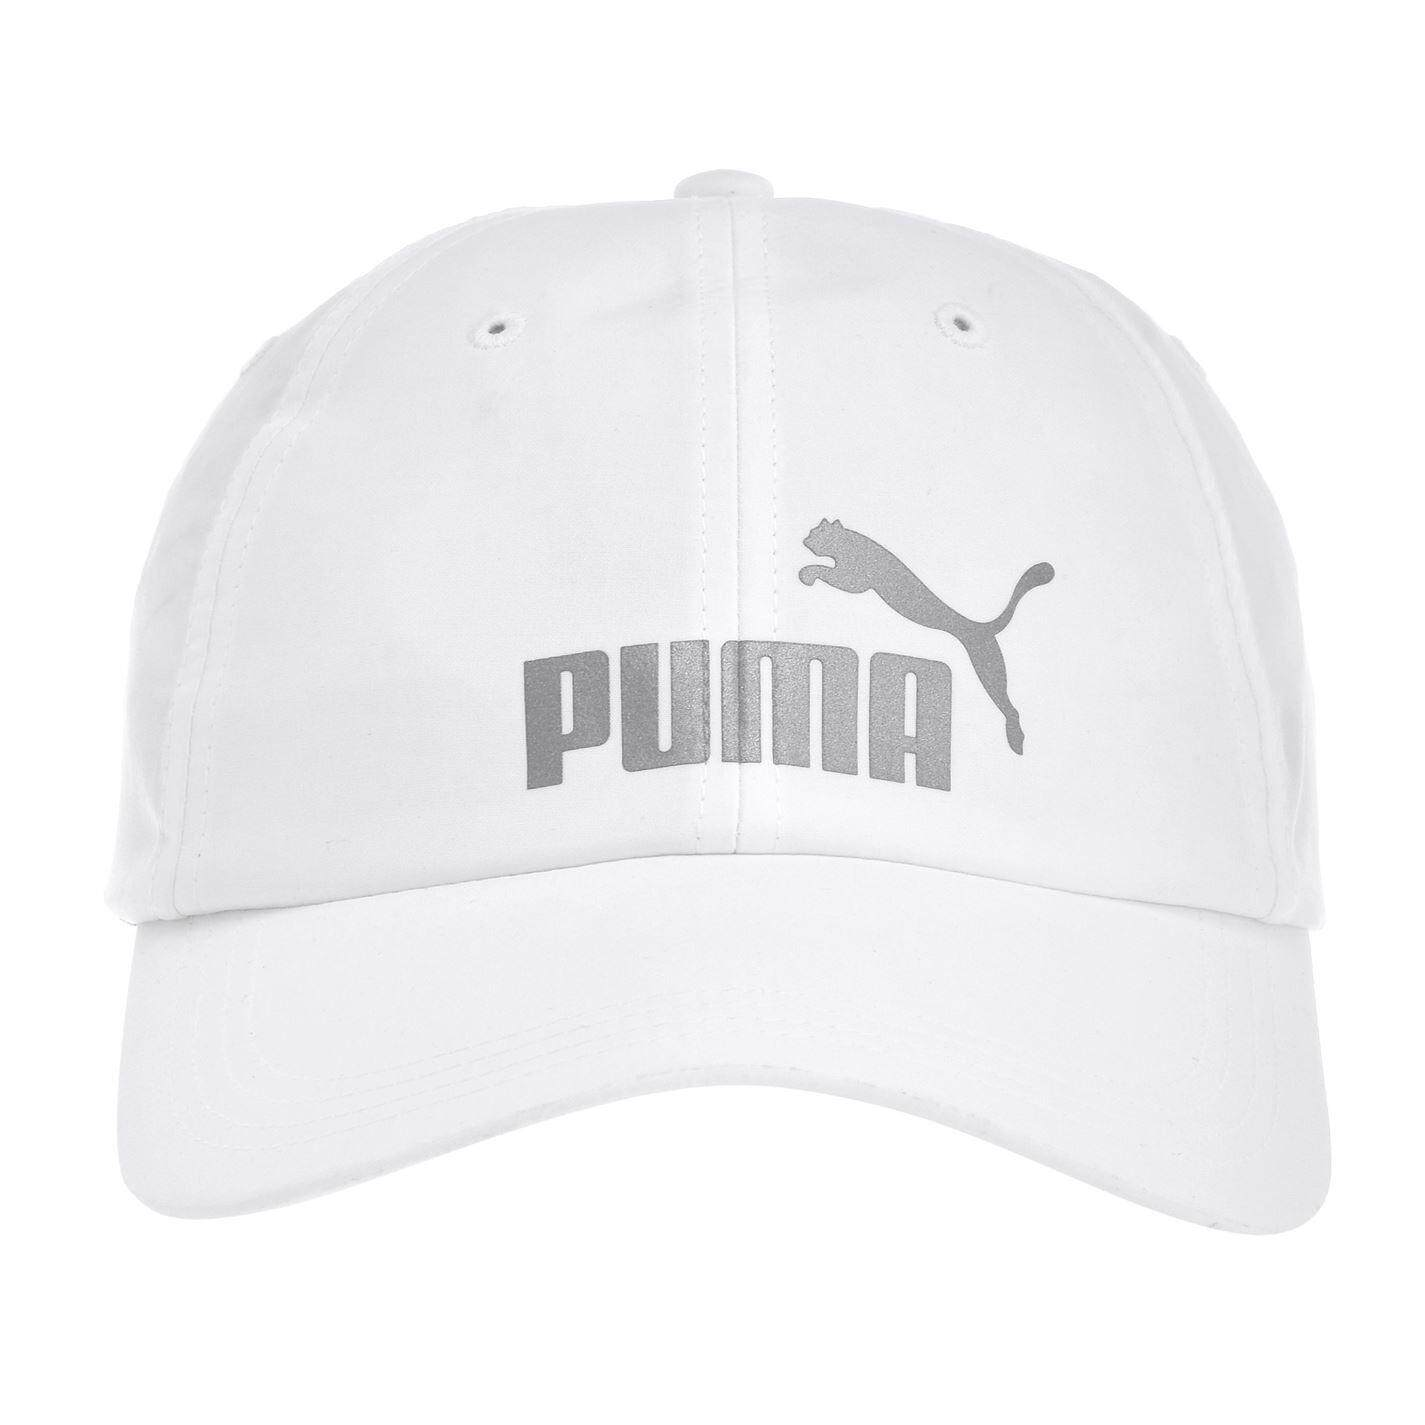 ac97259c250 Puma Products With Best Online Price At Lazada Malaysia